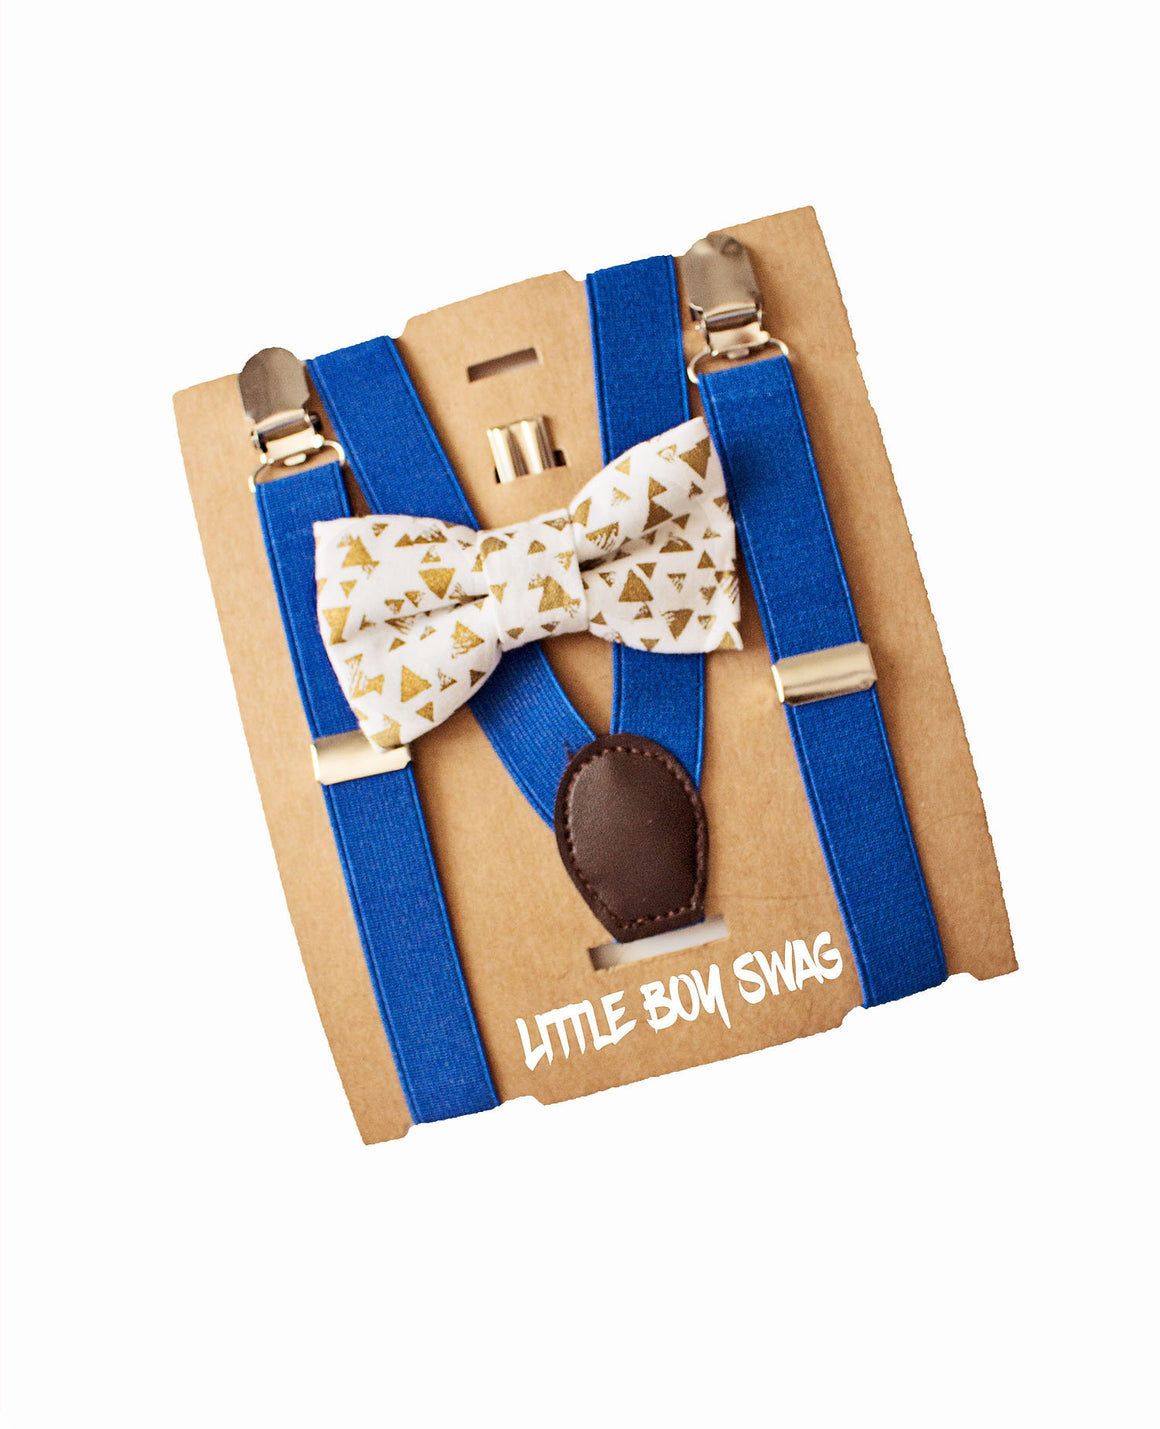 Ring Bearer Rehearsal Outfit - Gold Bow Tie & Royal Blue Suspenders, Boys First Birthday, Baby Shower Gift, Newborn Gift, Cake Smash Outfit